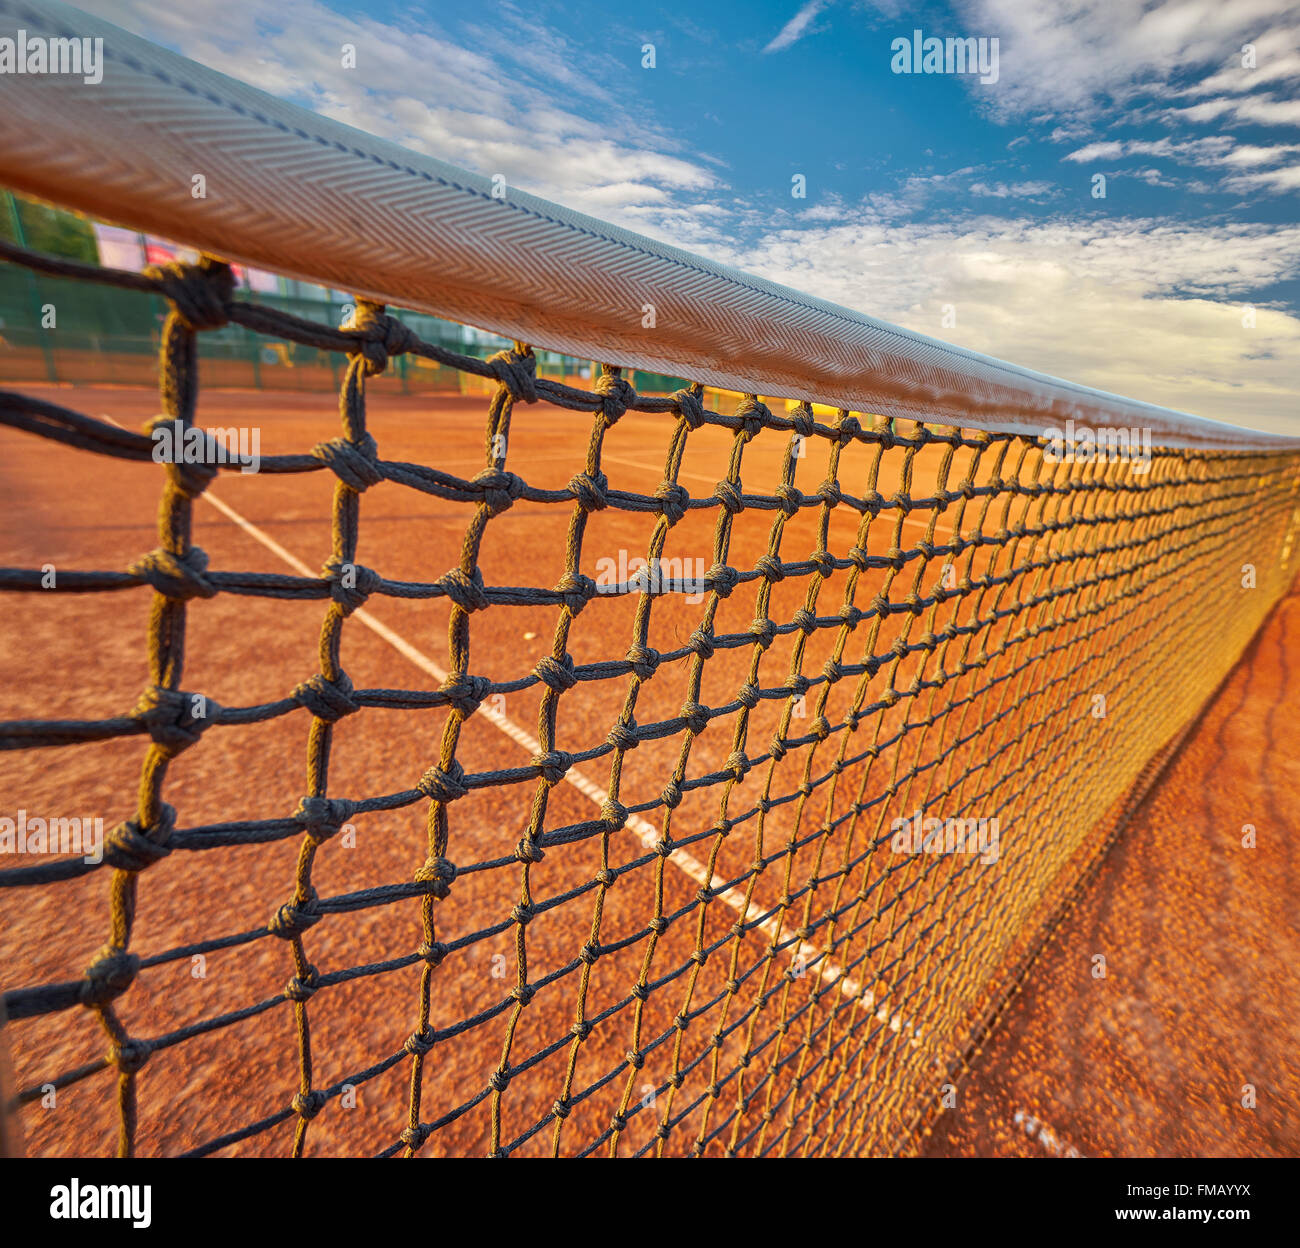 Tennis Grid on Tennis Court Background - Stock Image